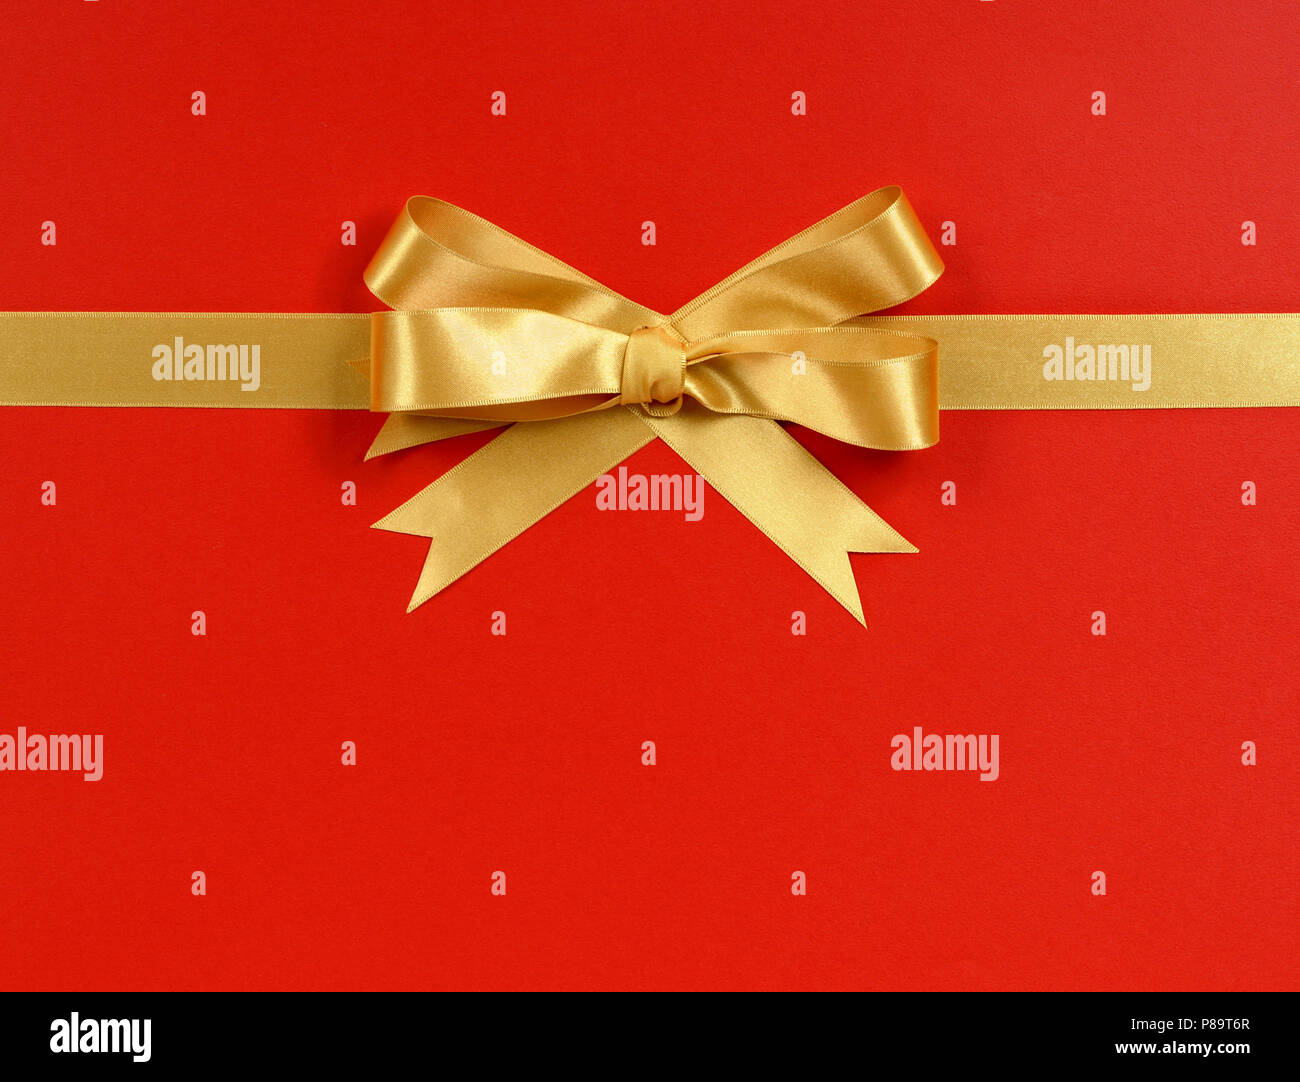 gold gift bow ribbon horizontal isolated on red wrapping paper